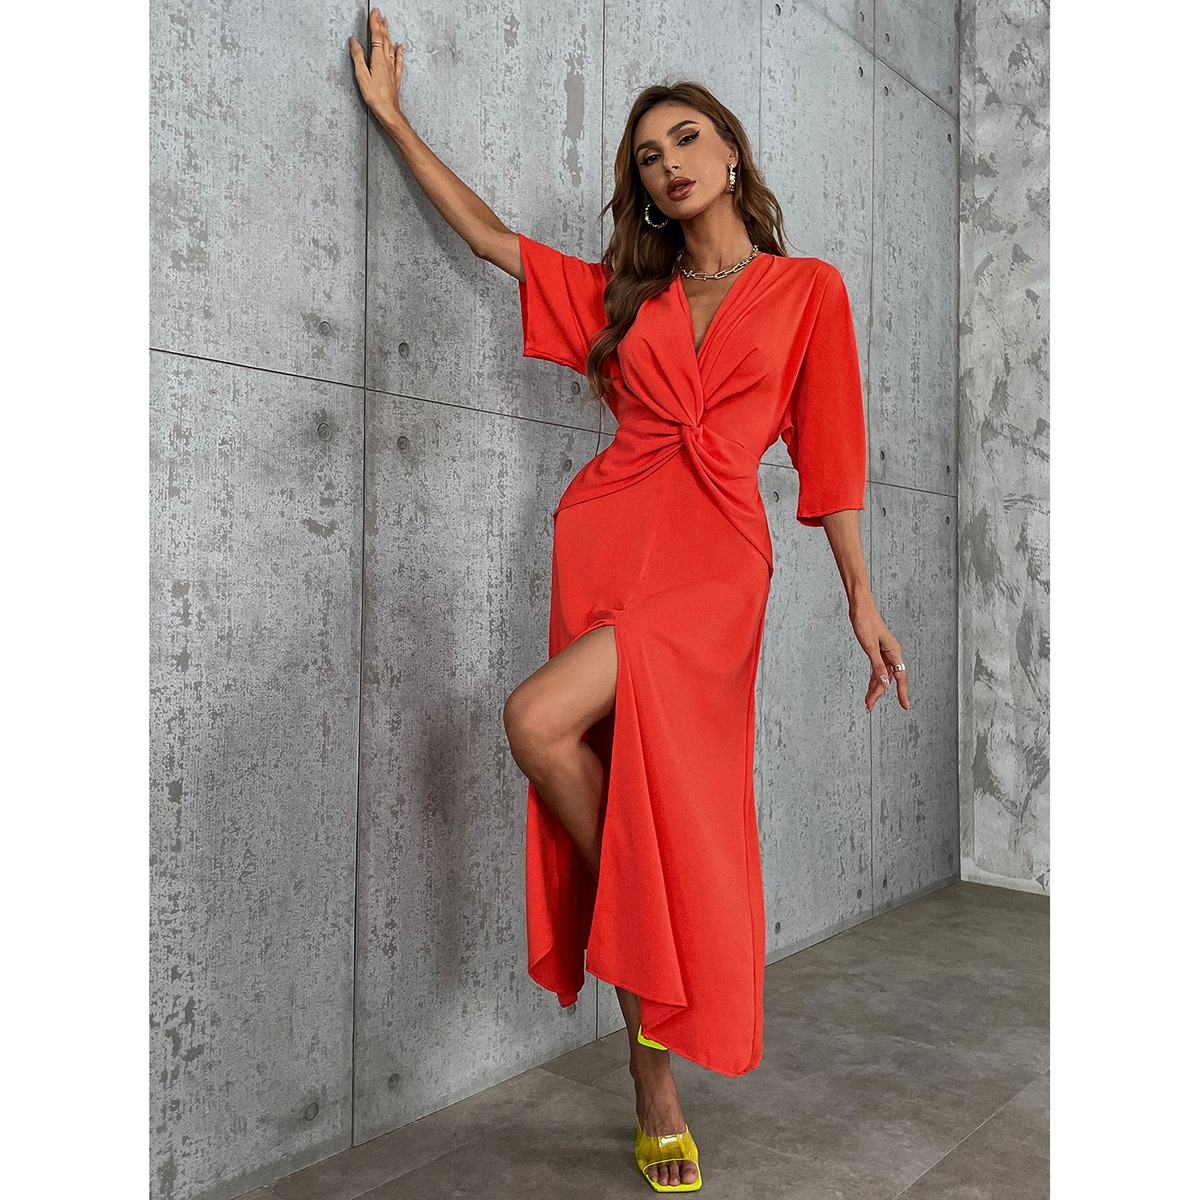 Batwing Sleeve Twist Front Split Thigh Dress, SHEIN  - buy with discount